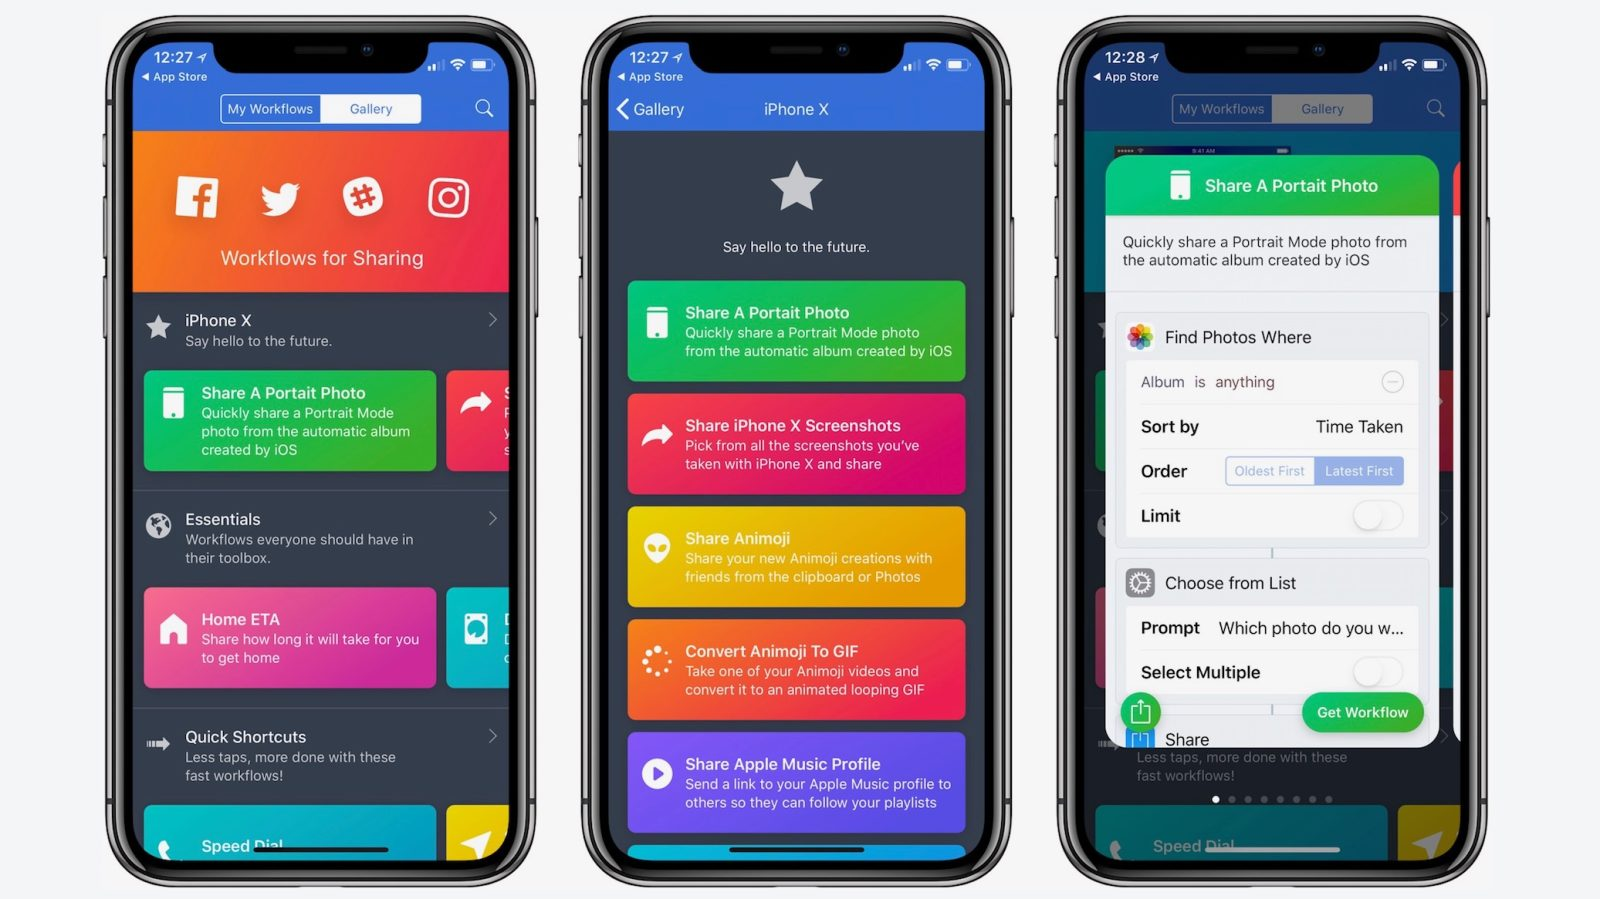 c7be476a8e Apple's Workflow app updated with iPhone X and iOS 11 features, more ...